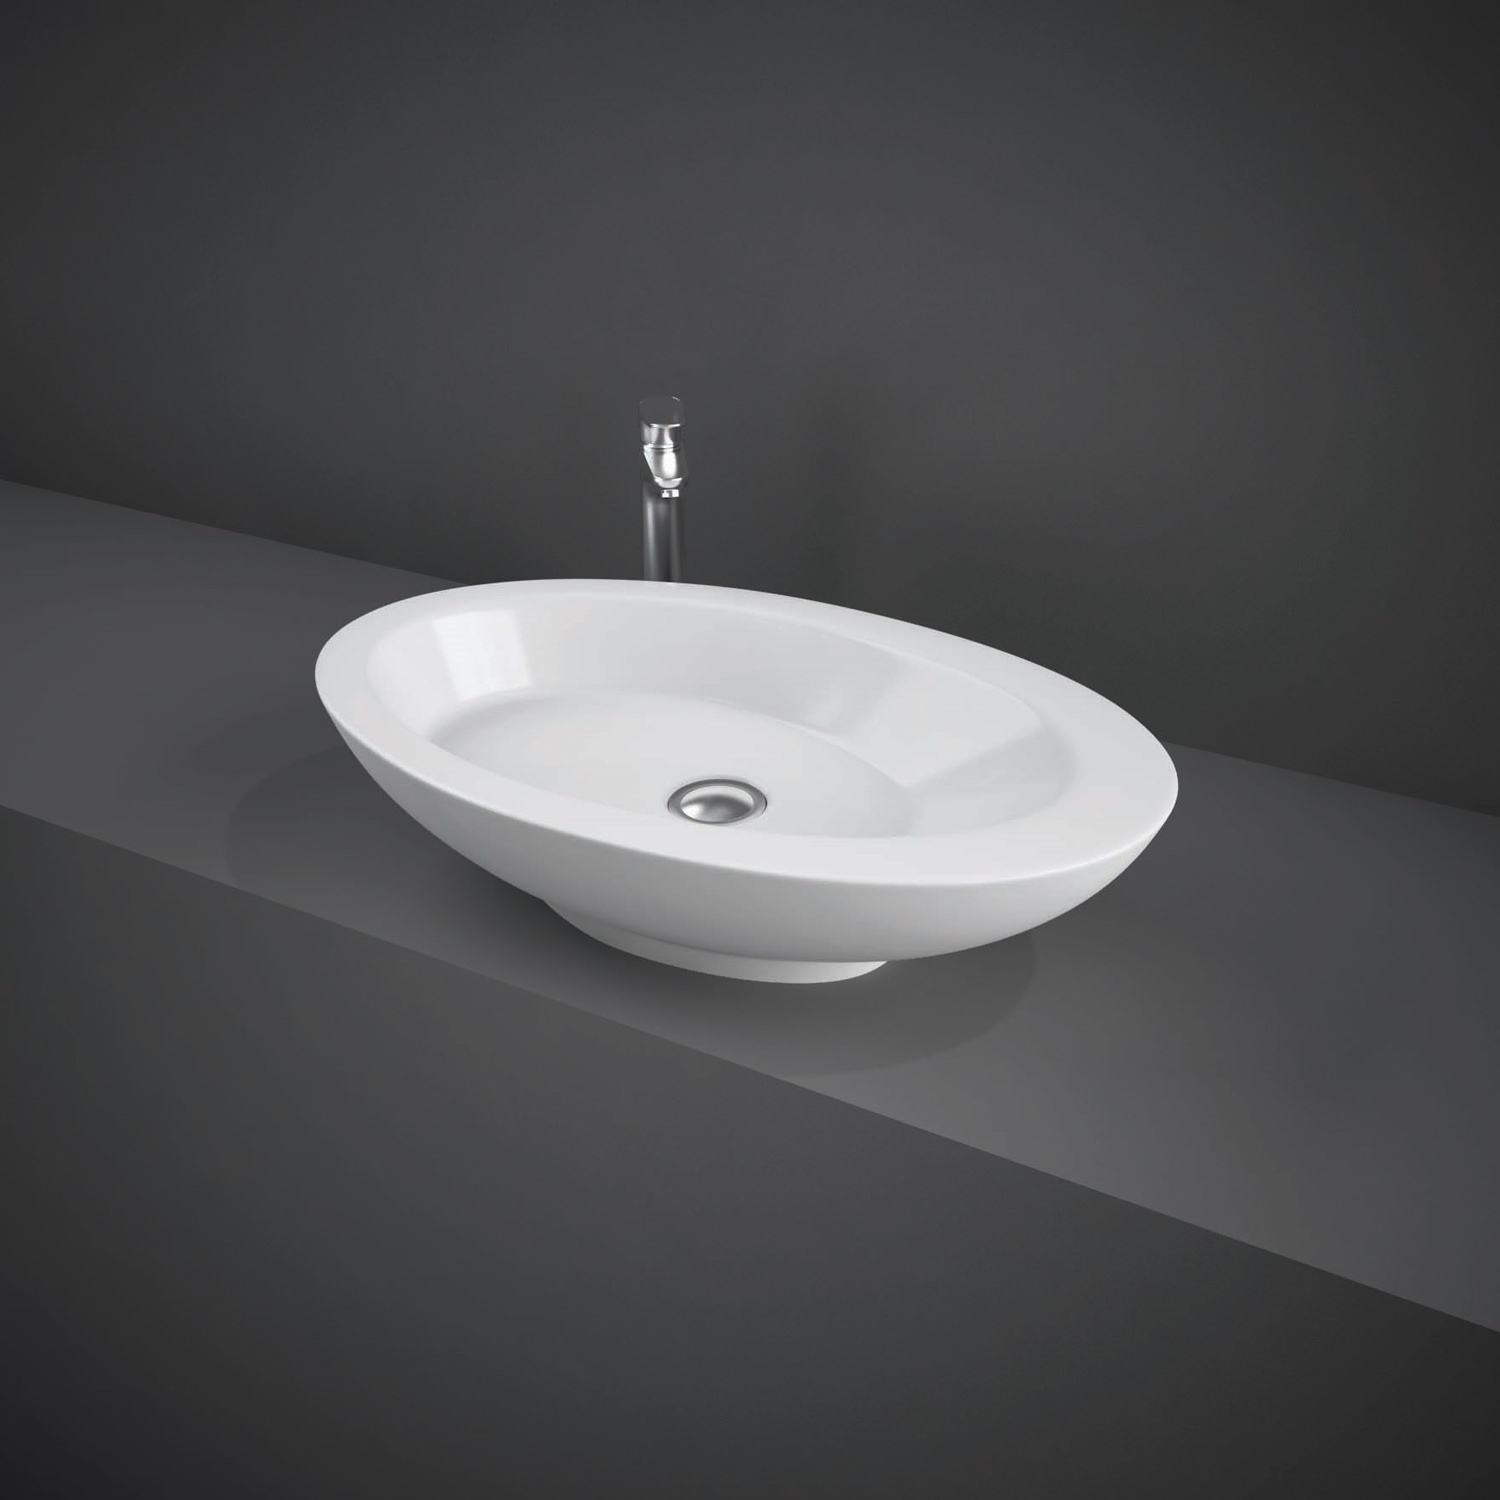 RAK Infinity Large Counter Top Basin 580mm Wide